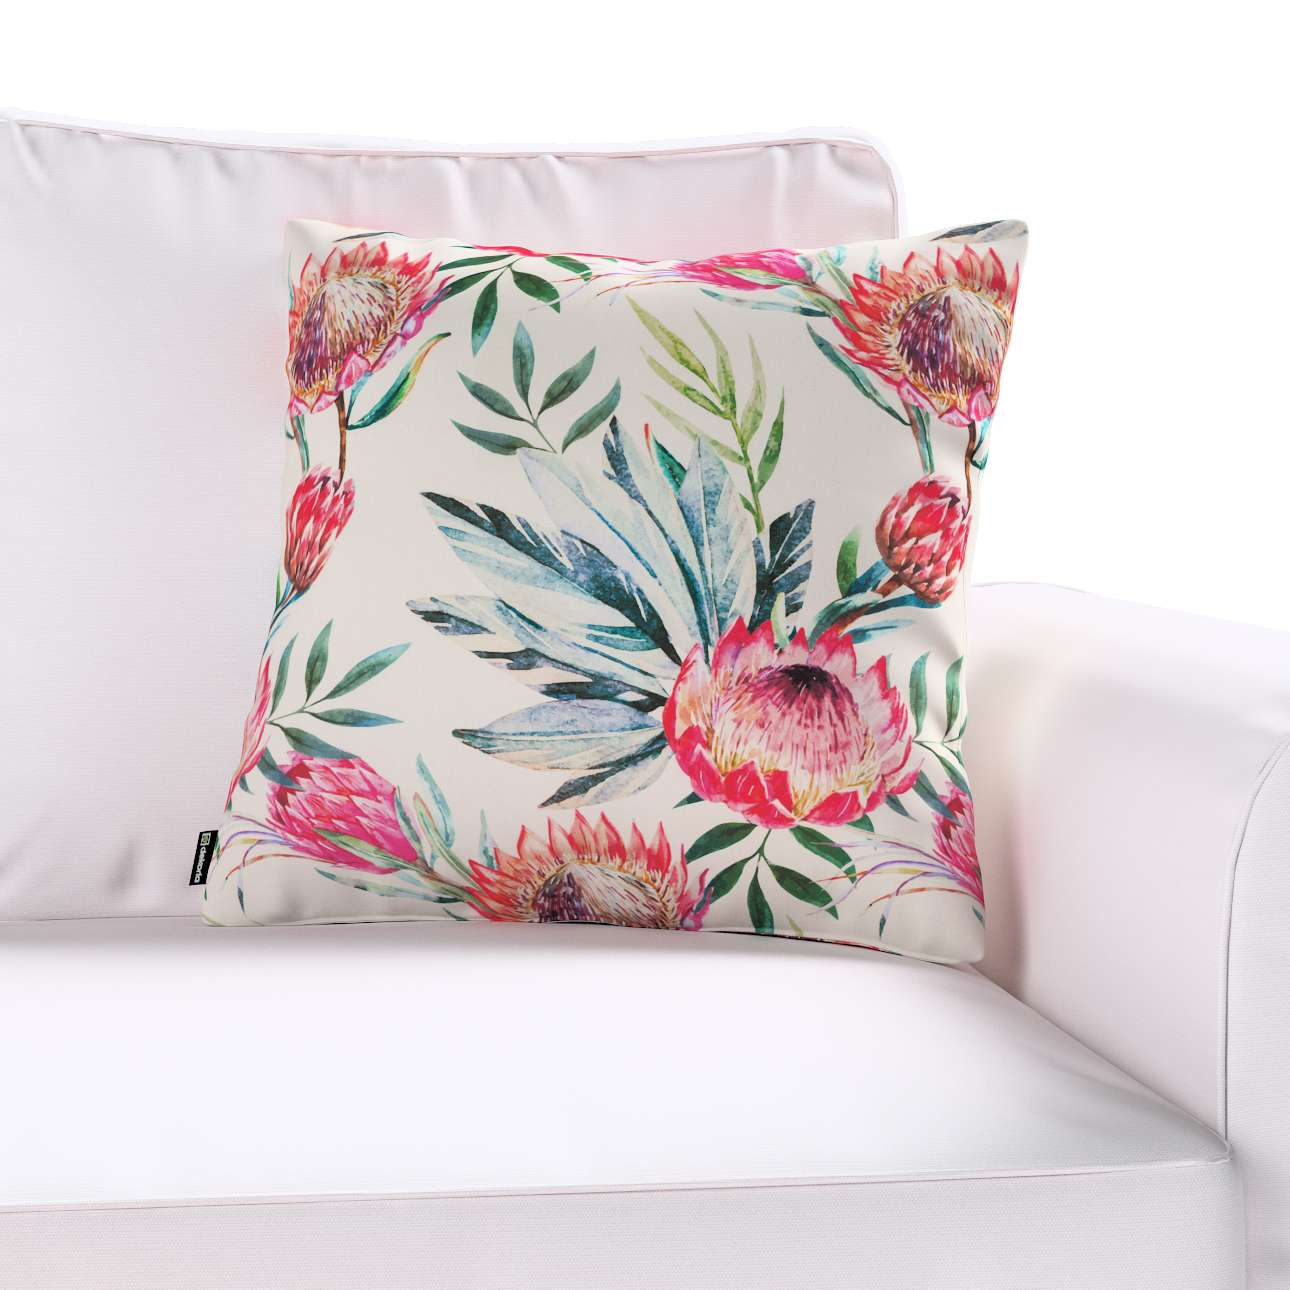 Kinga cushion cover in collection New Art, fabric: 141-59